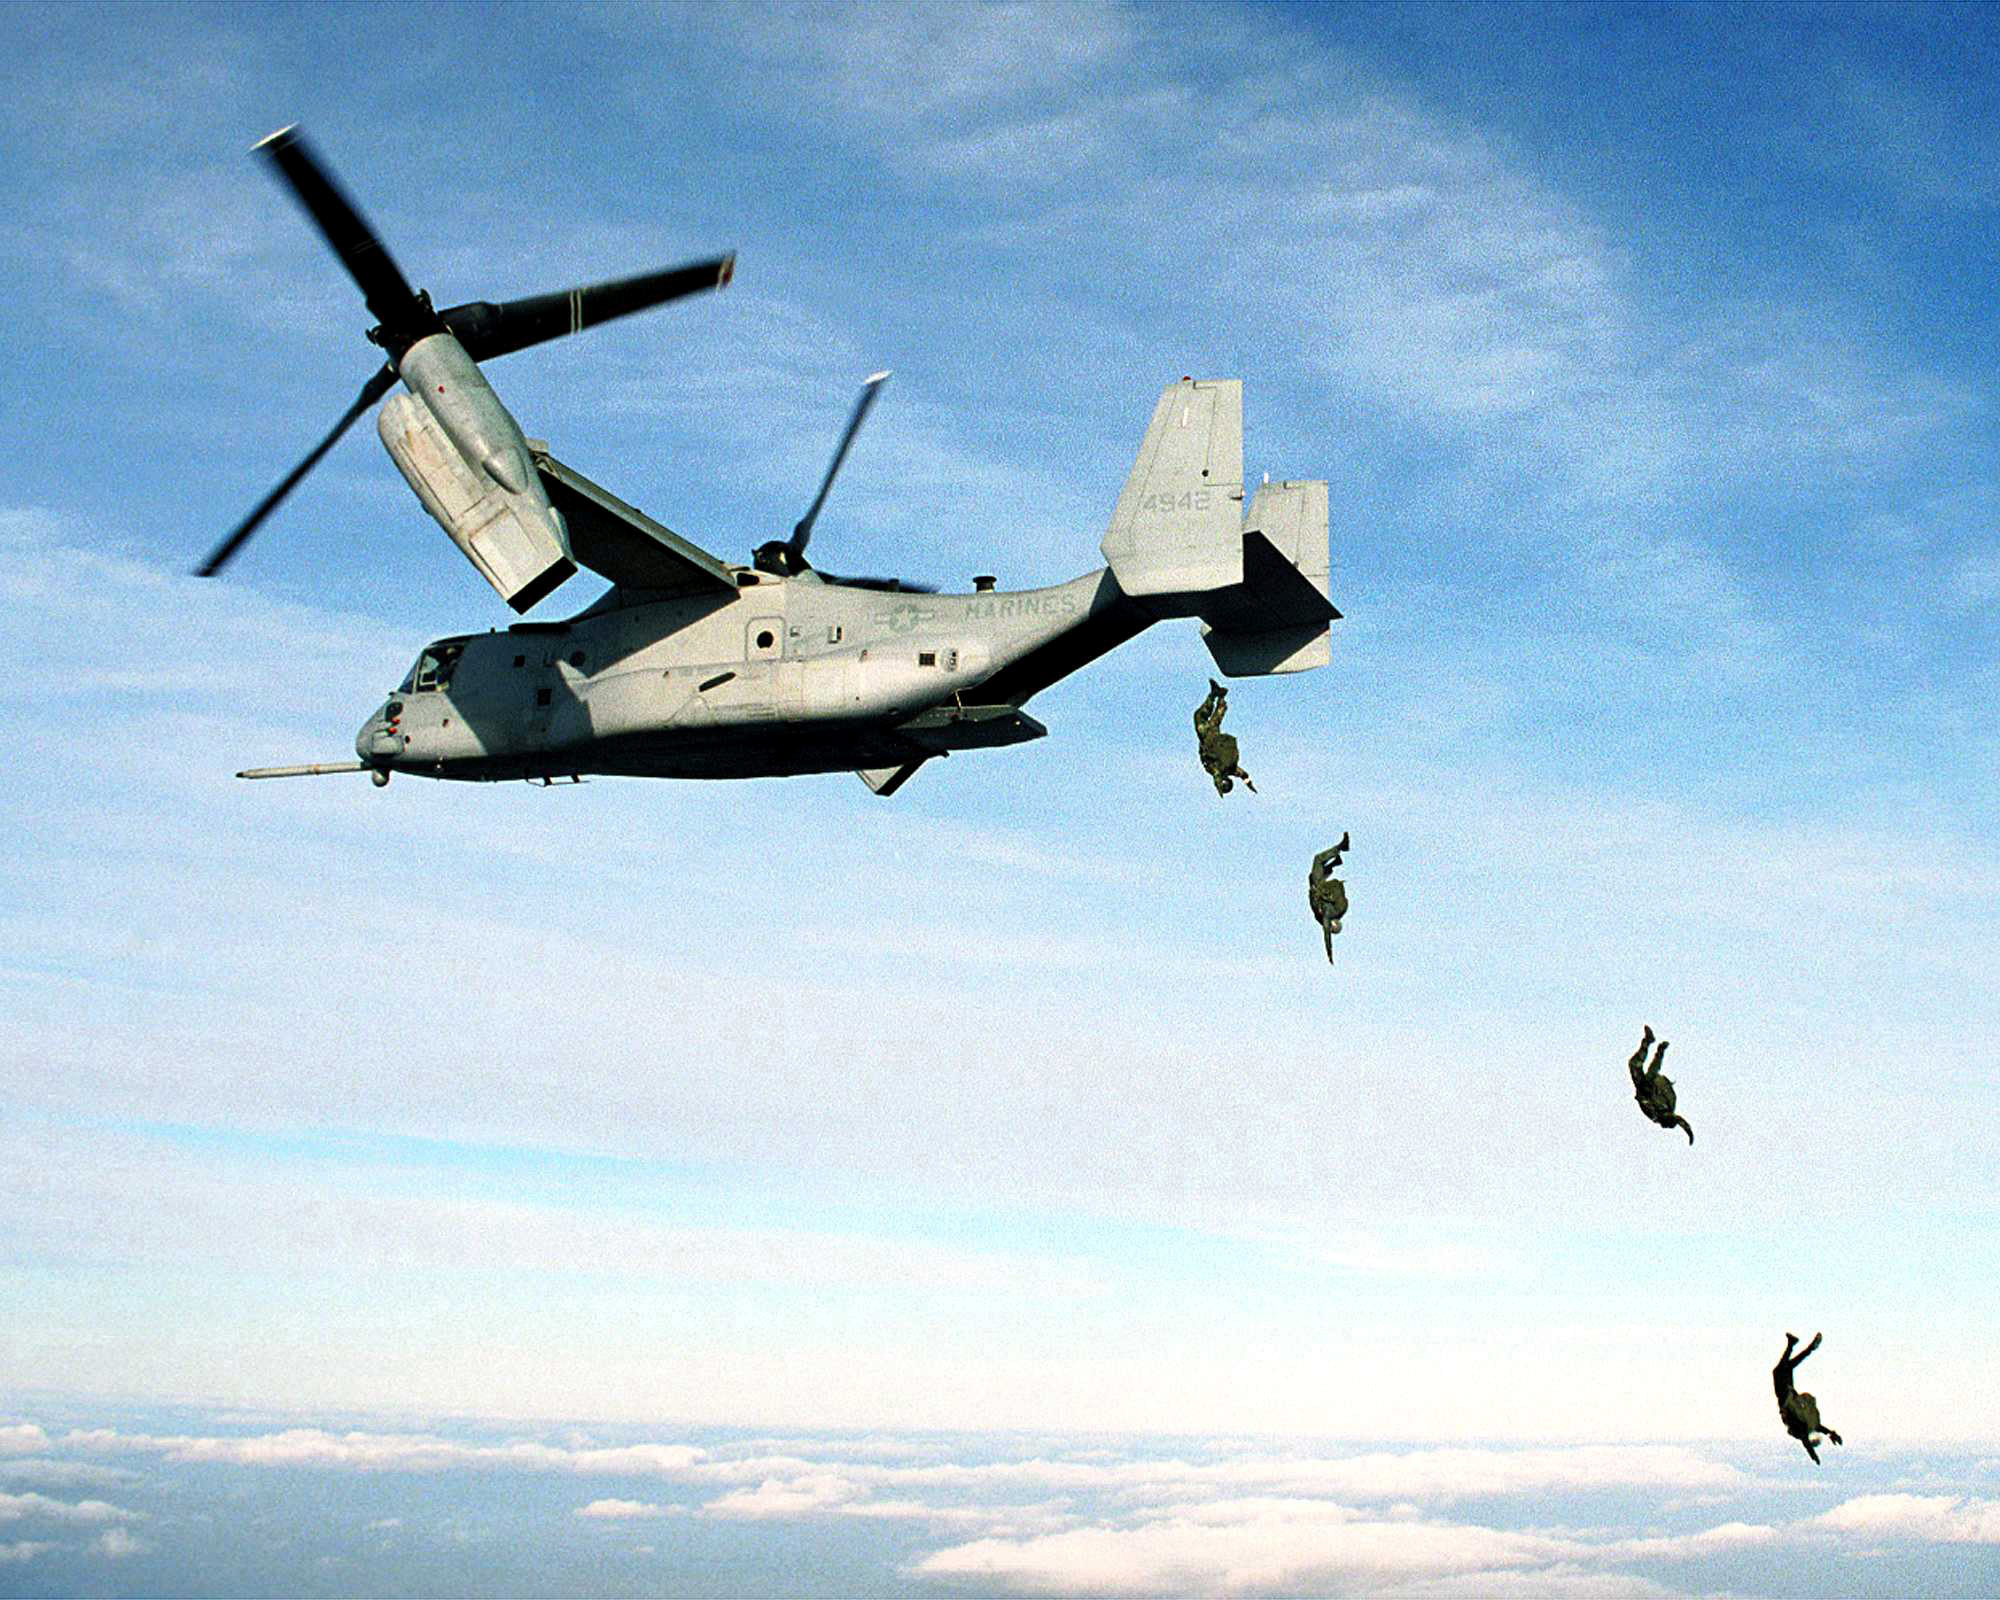 2015 Weapons And Warfare Page 326 V 22 Osprey Engine Diagram 000100 M 0000p 001 Us Marine Corps Parachutists Free Fall From An Mv